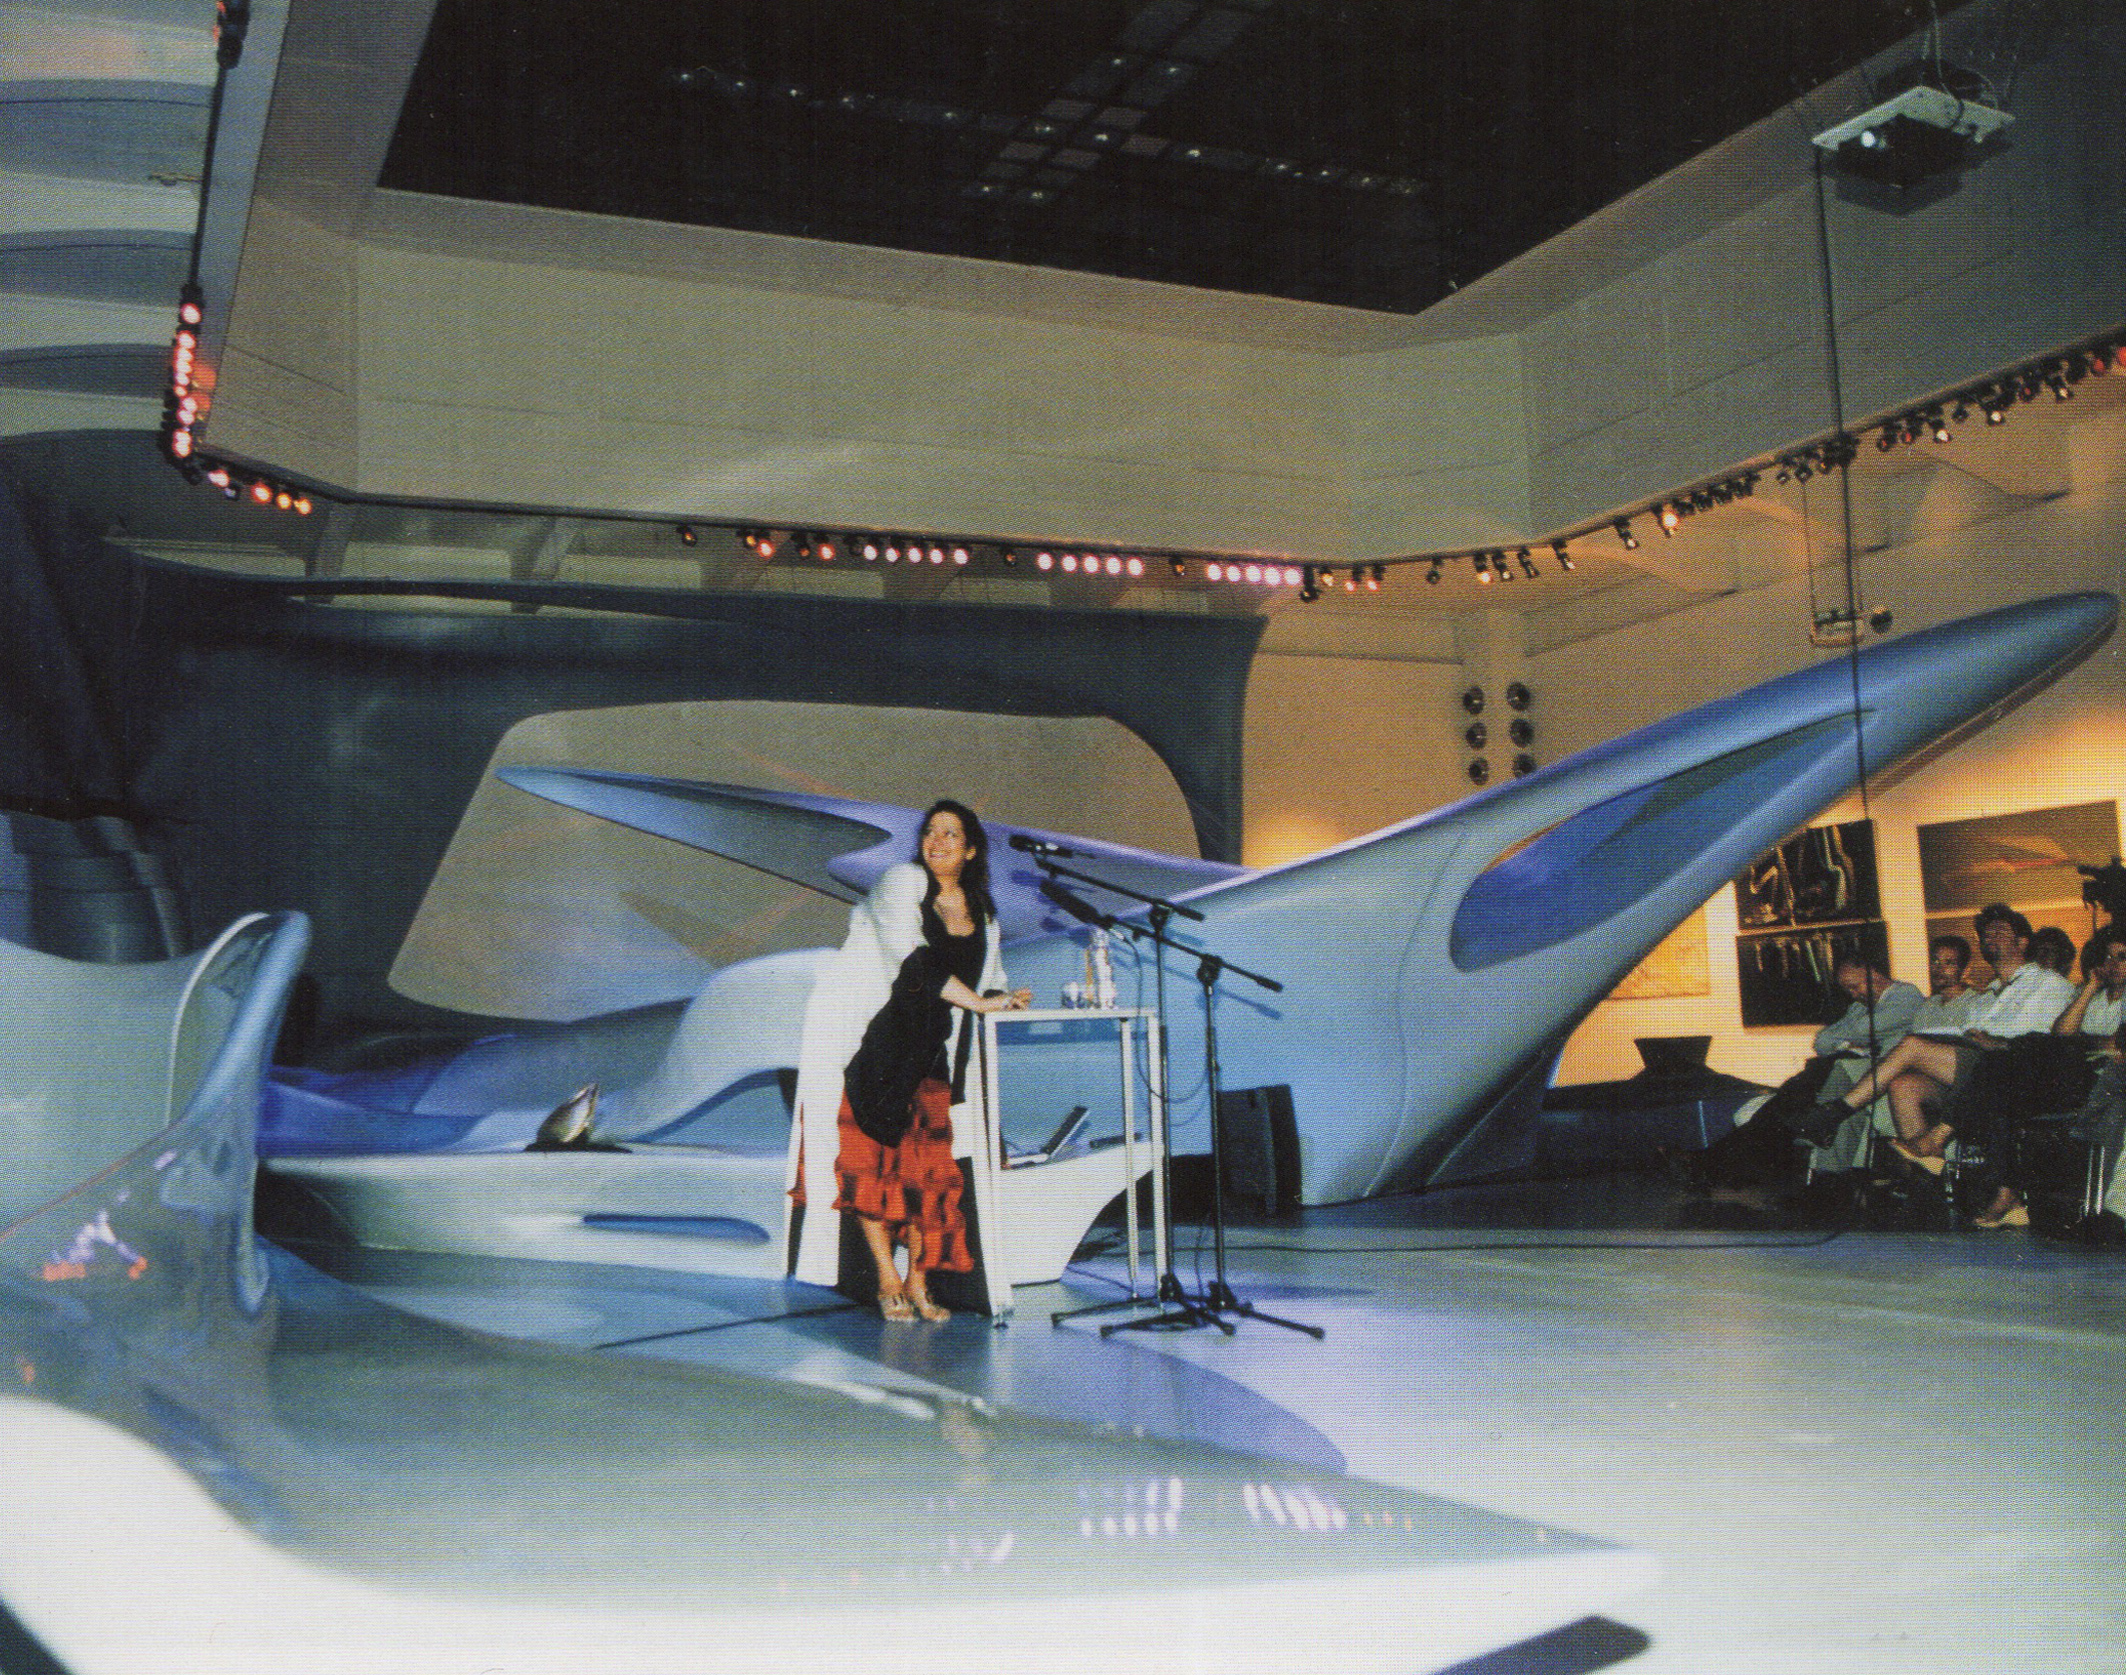 essay on zaha hadid The architect zaha hadid at a news conference in belgium in 2012  but a  recent essay (paywall) by martin filler in the new york review of.